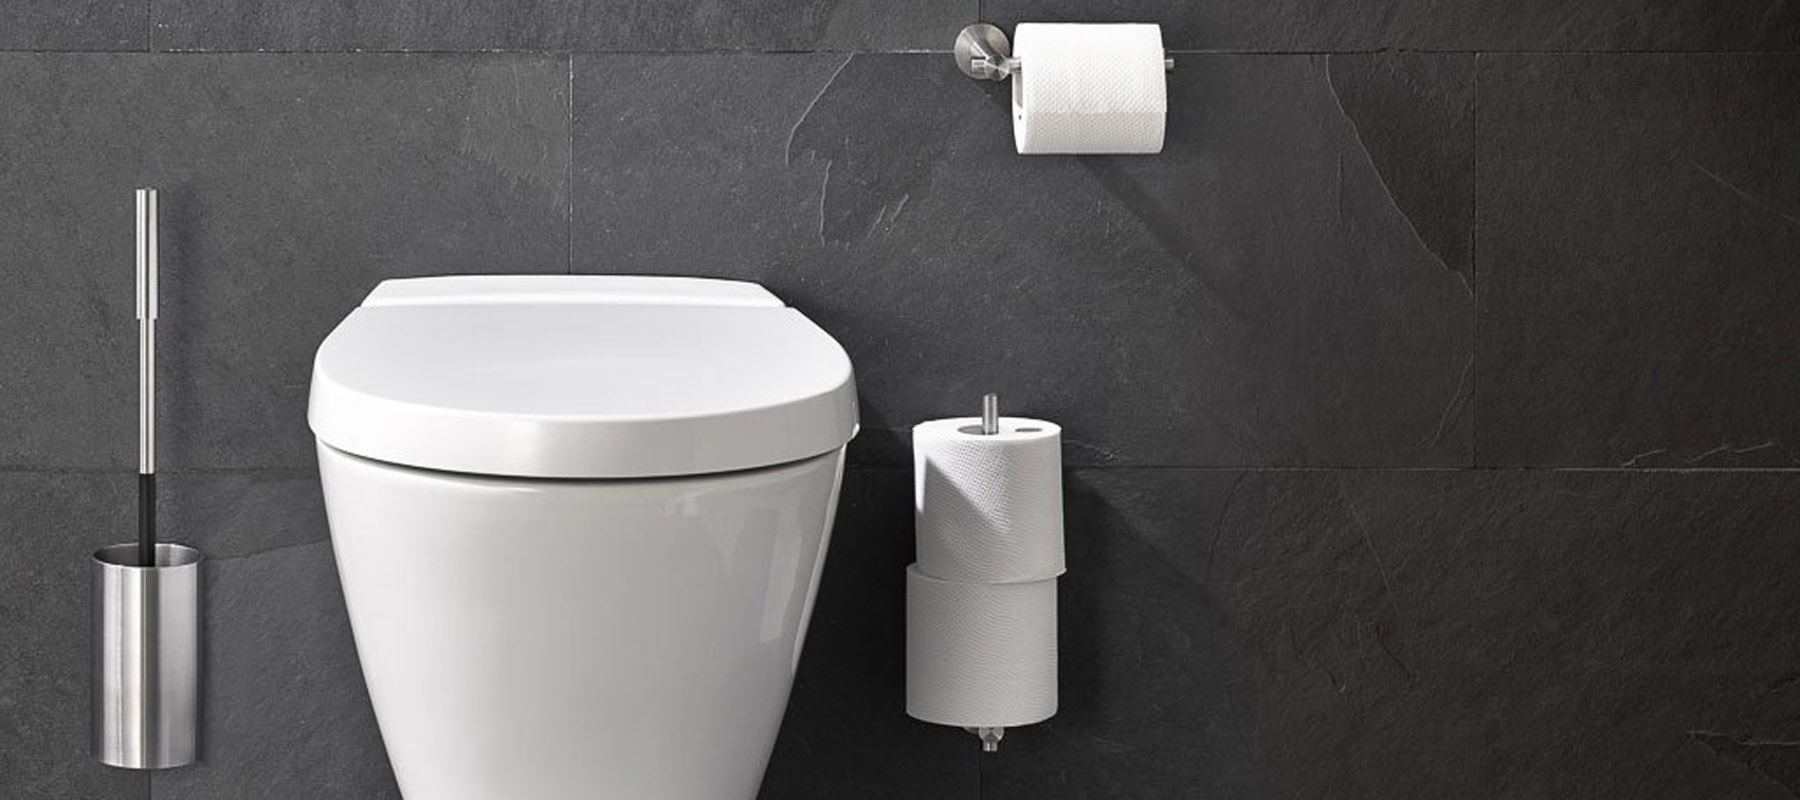 PHOS Toilet roll holders 1800x800